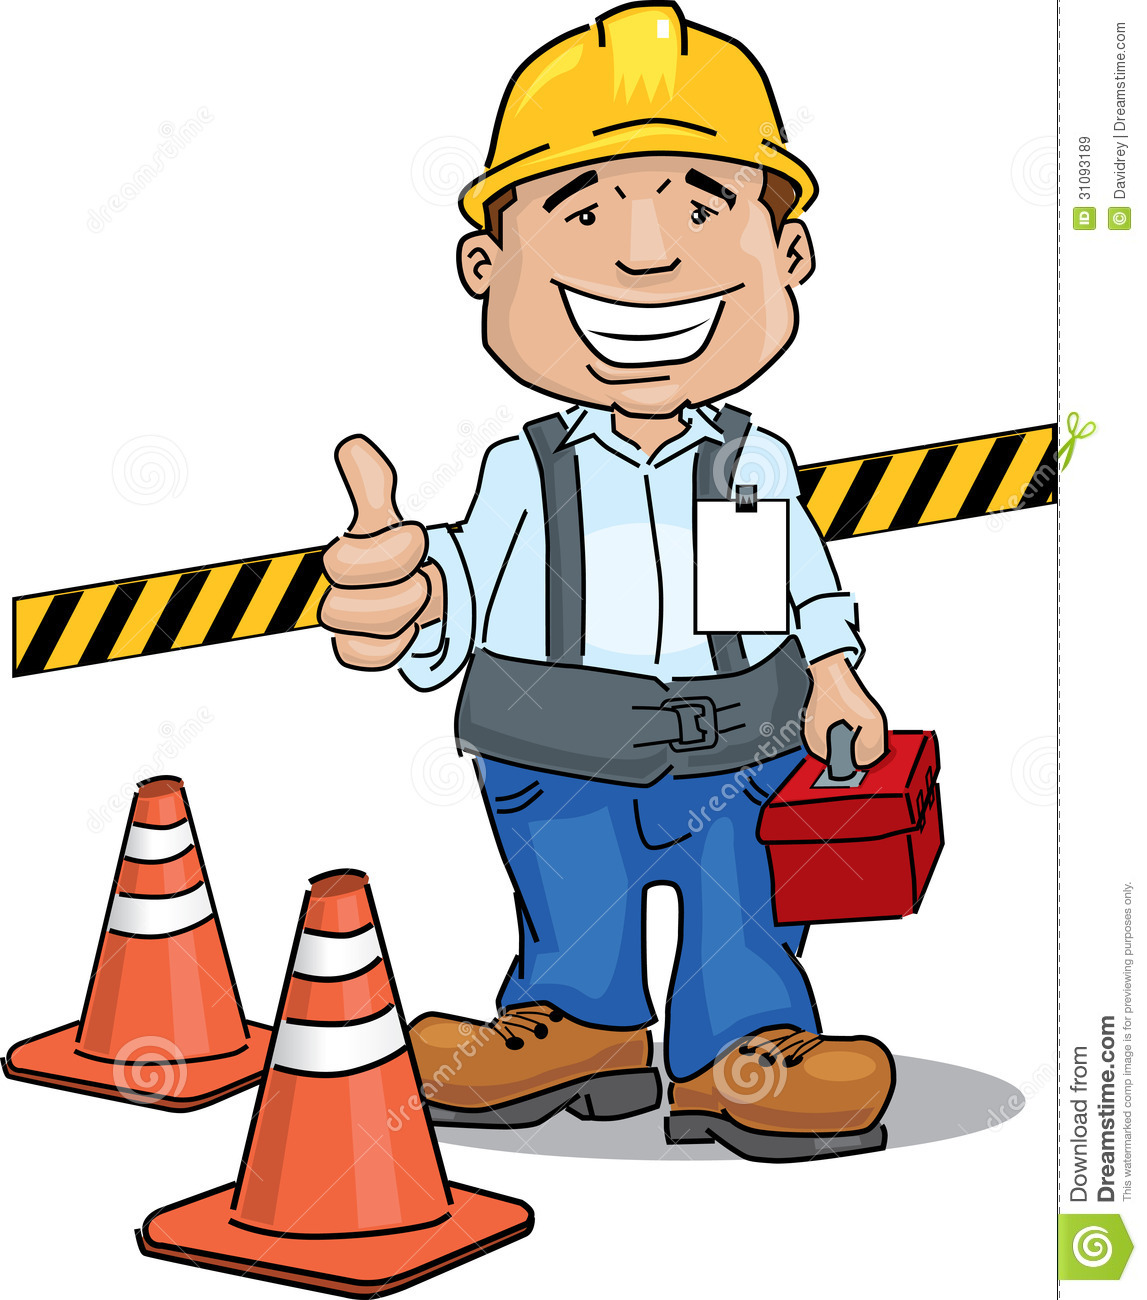 Free worker cliparts download. Jobs clipart construction